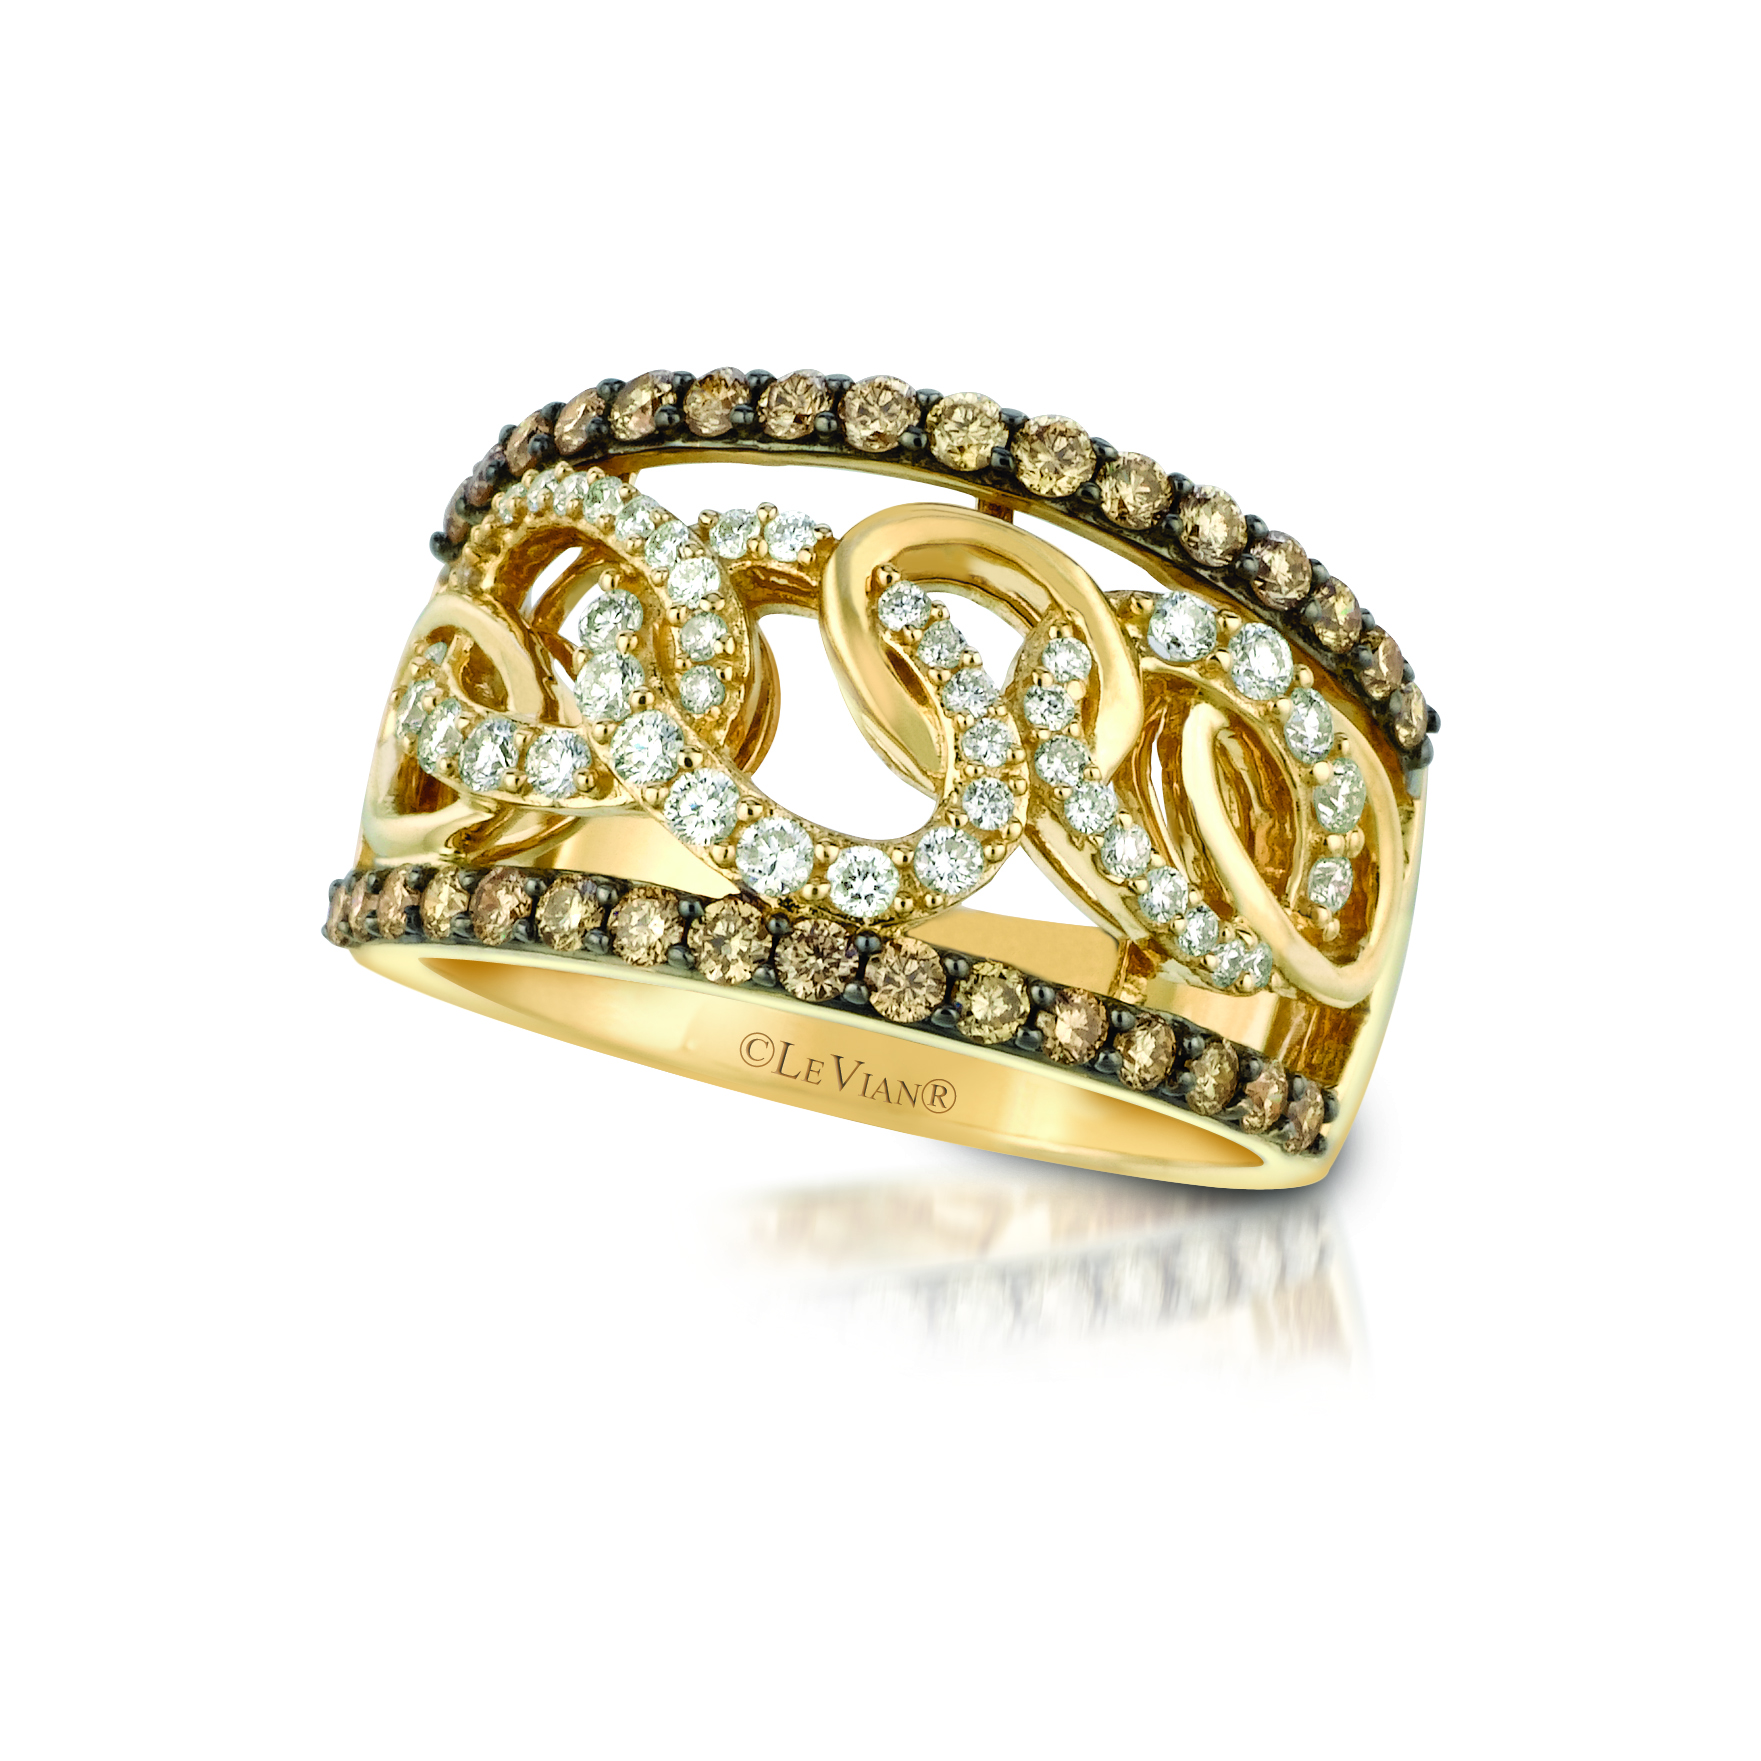 the le vian collection klamath falls oregon brand name